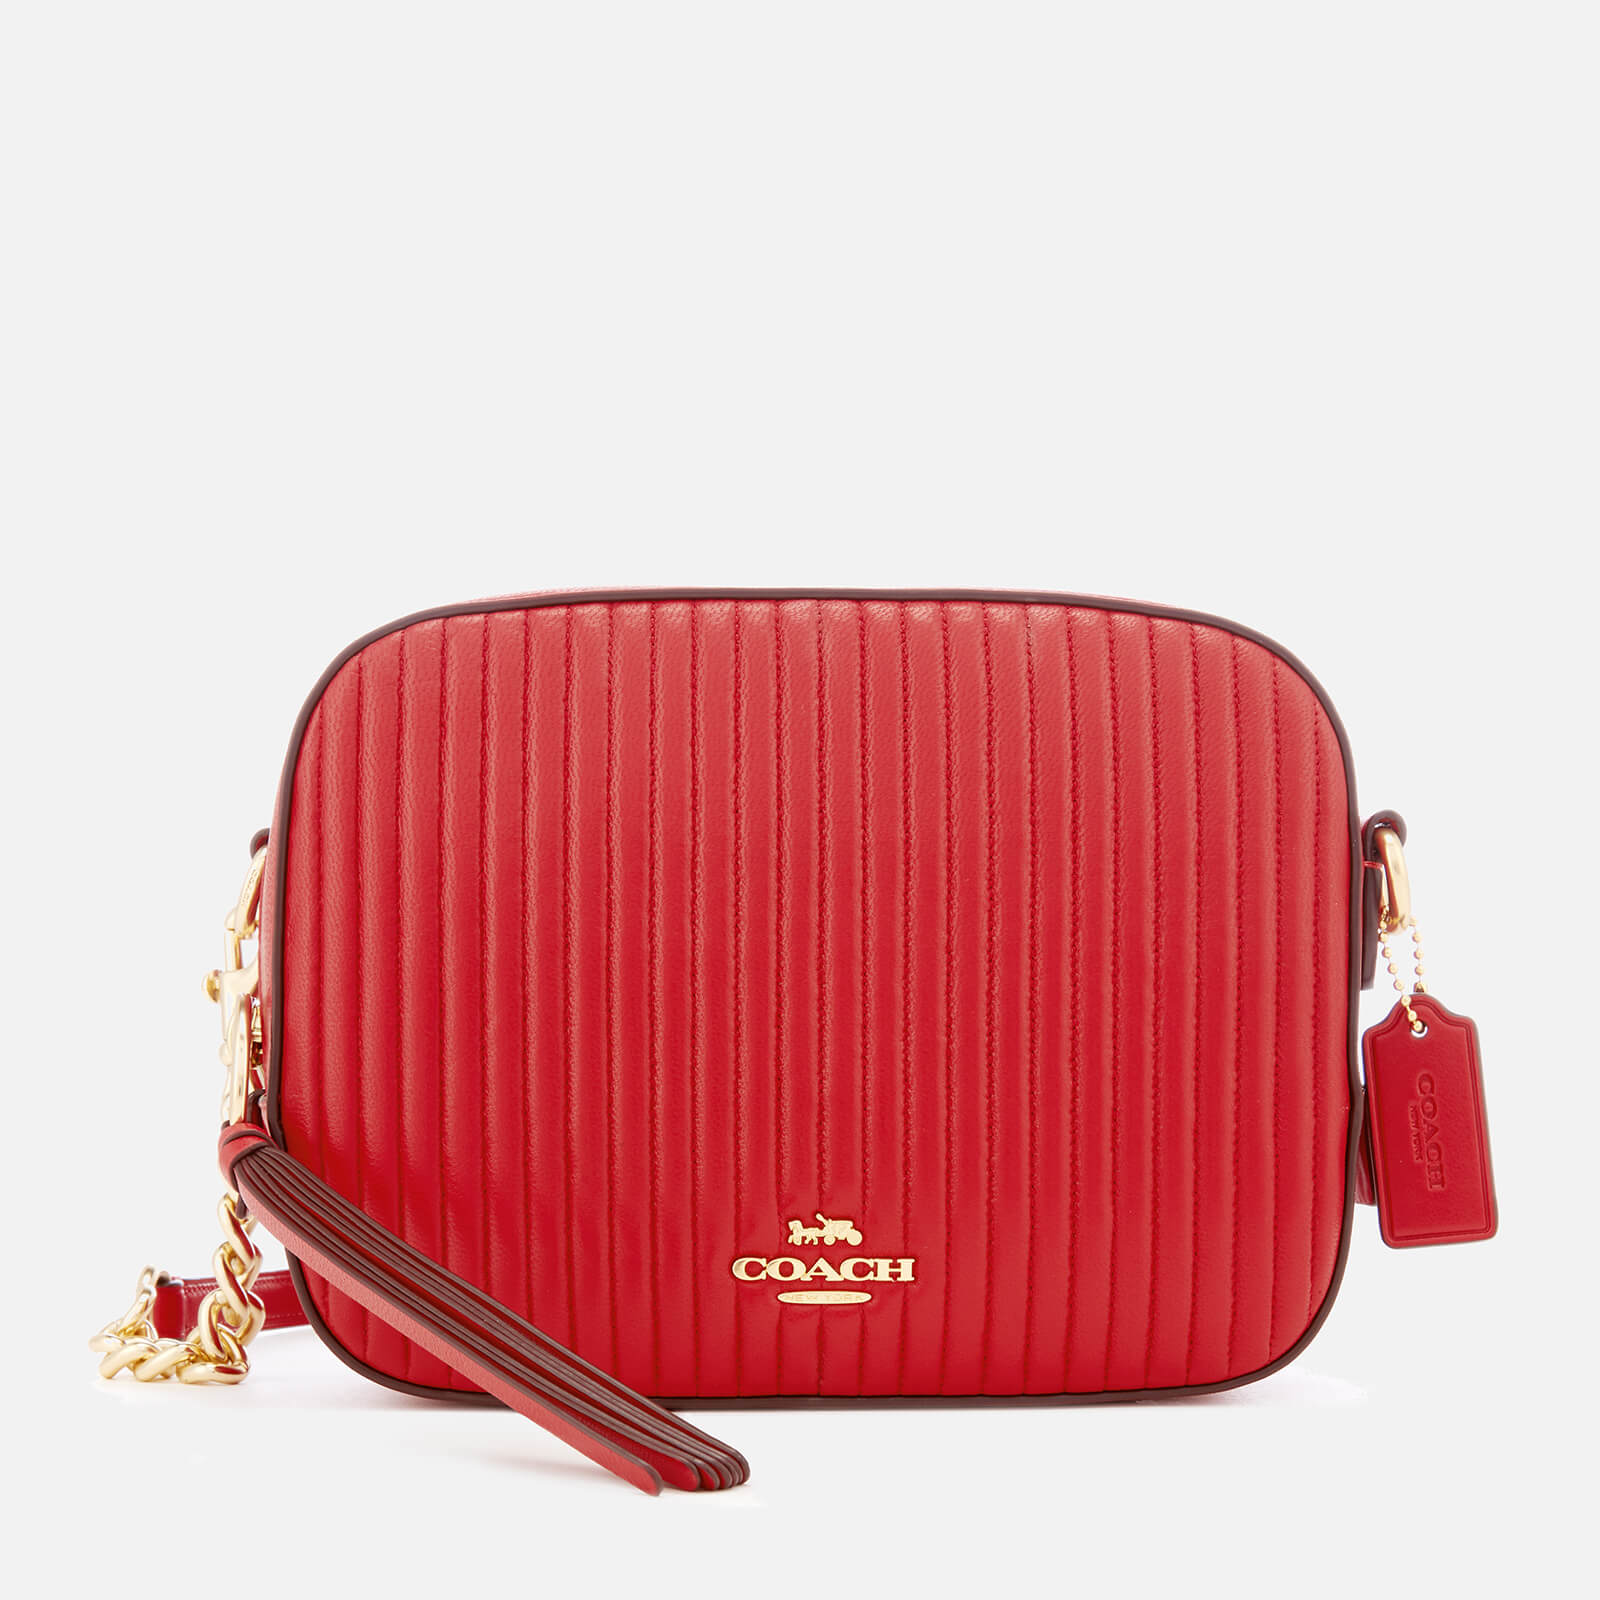 29324607ca97 Coach Women s Quilted Leather Camera Bag - Jasper - Free UK Delivery over  £50